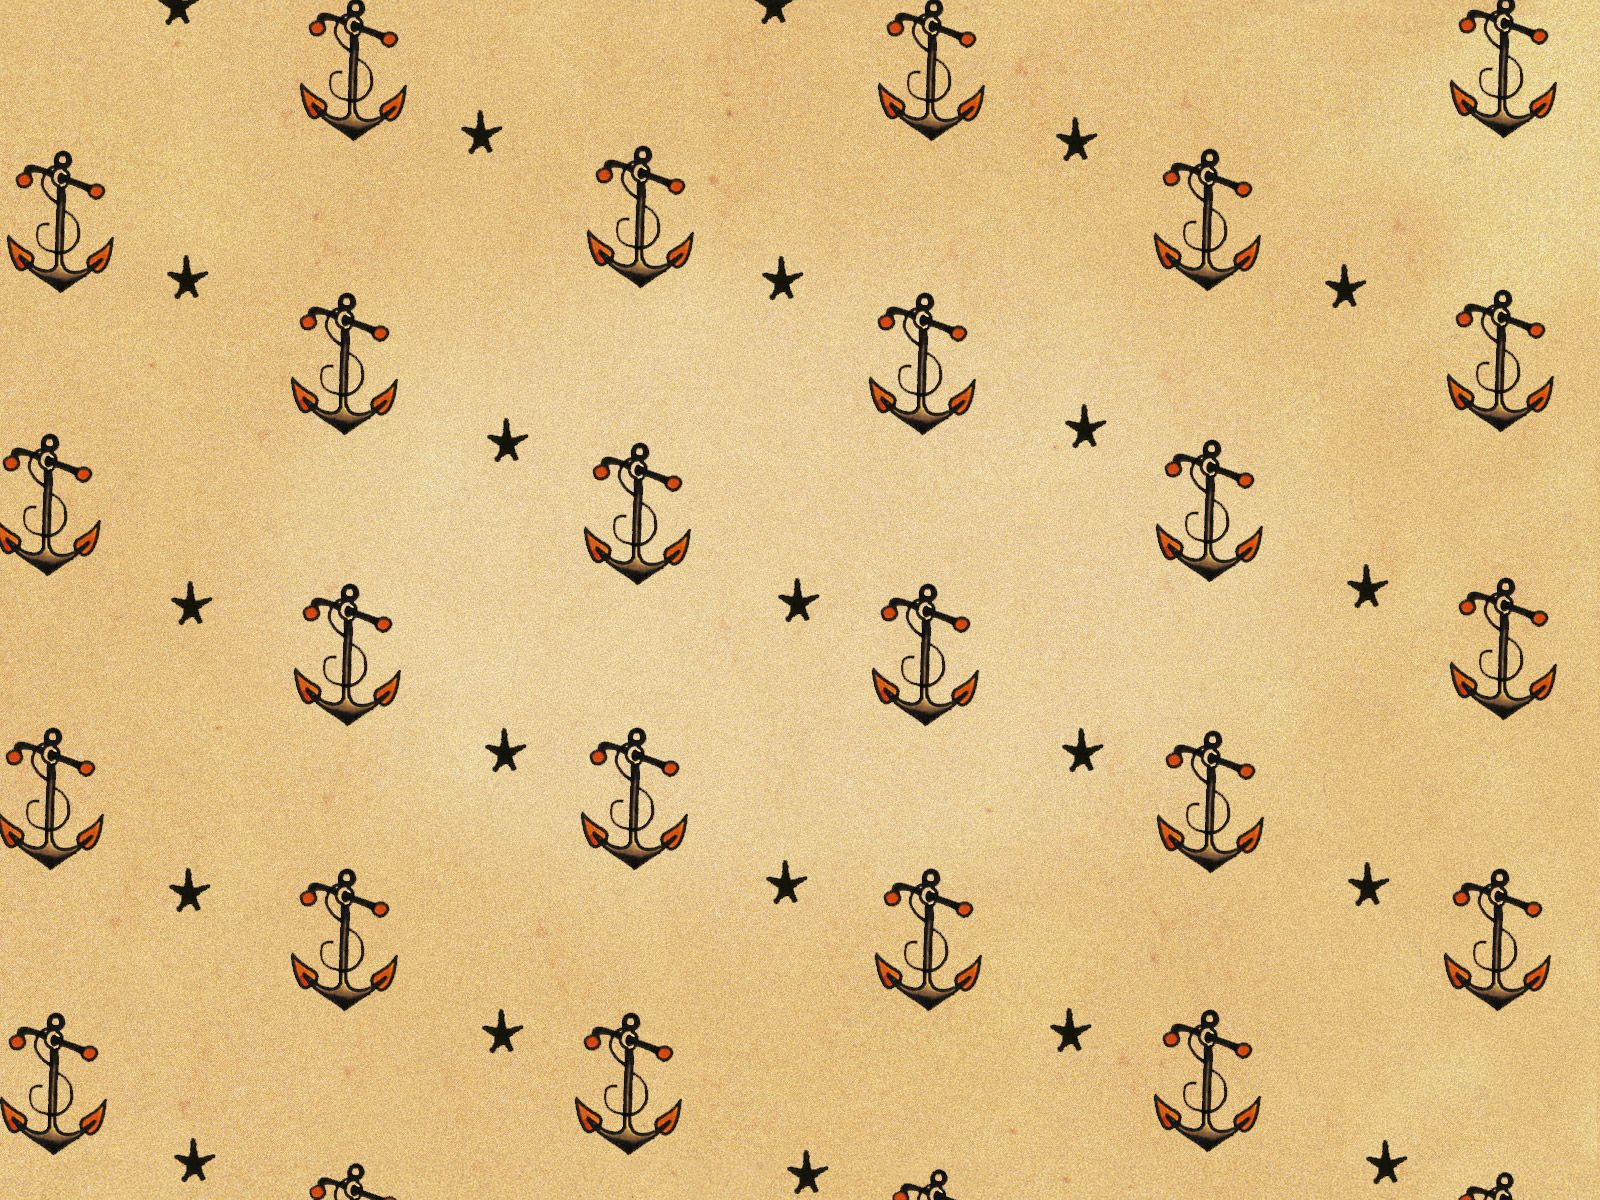 anchors wallpaper. anchors wallpaper Sailor Jerry ...